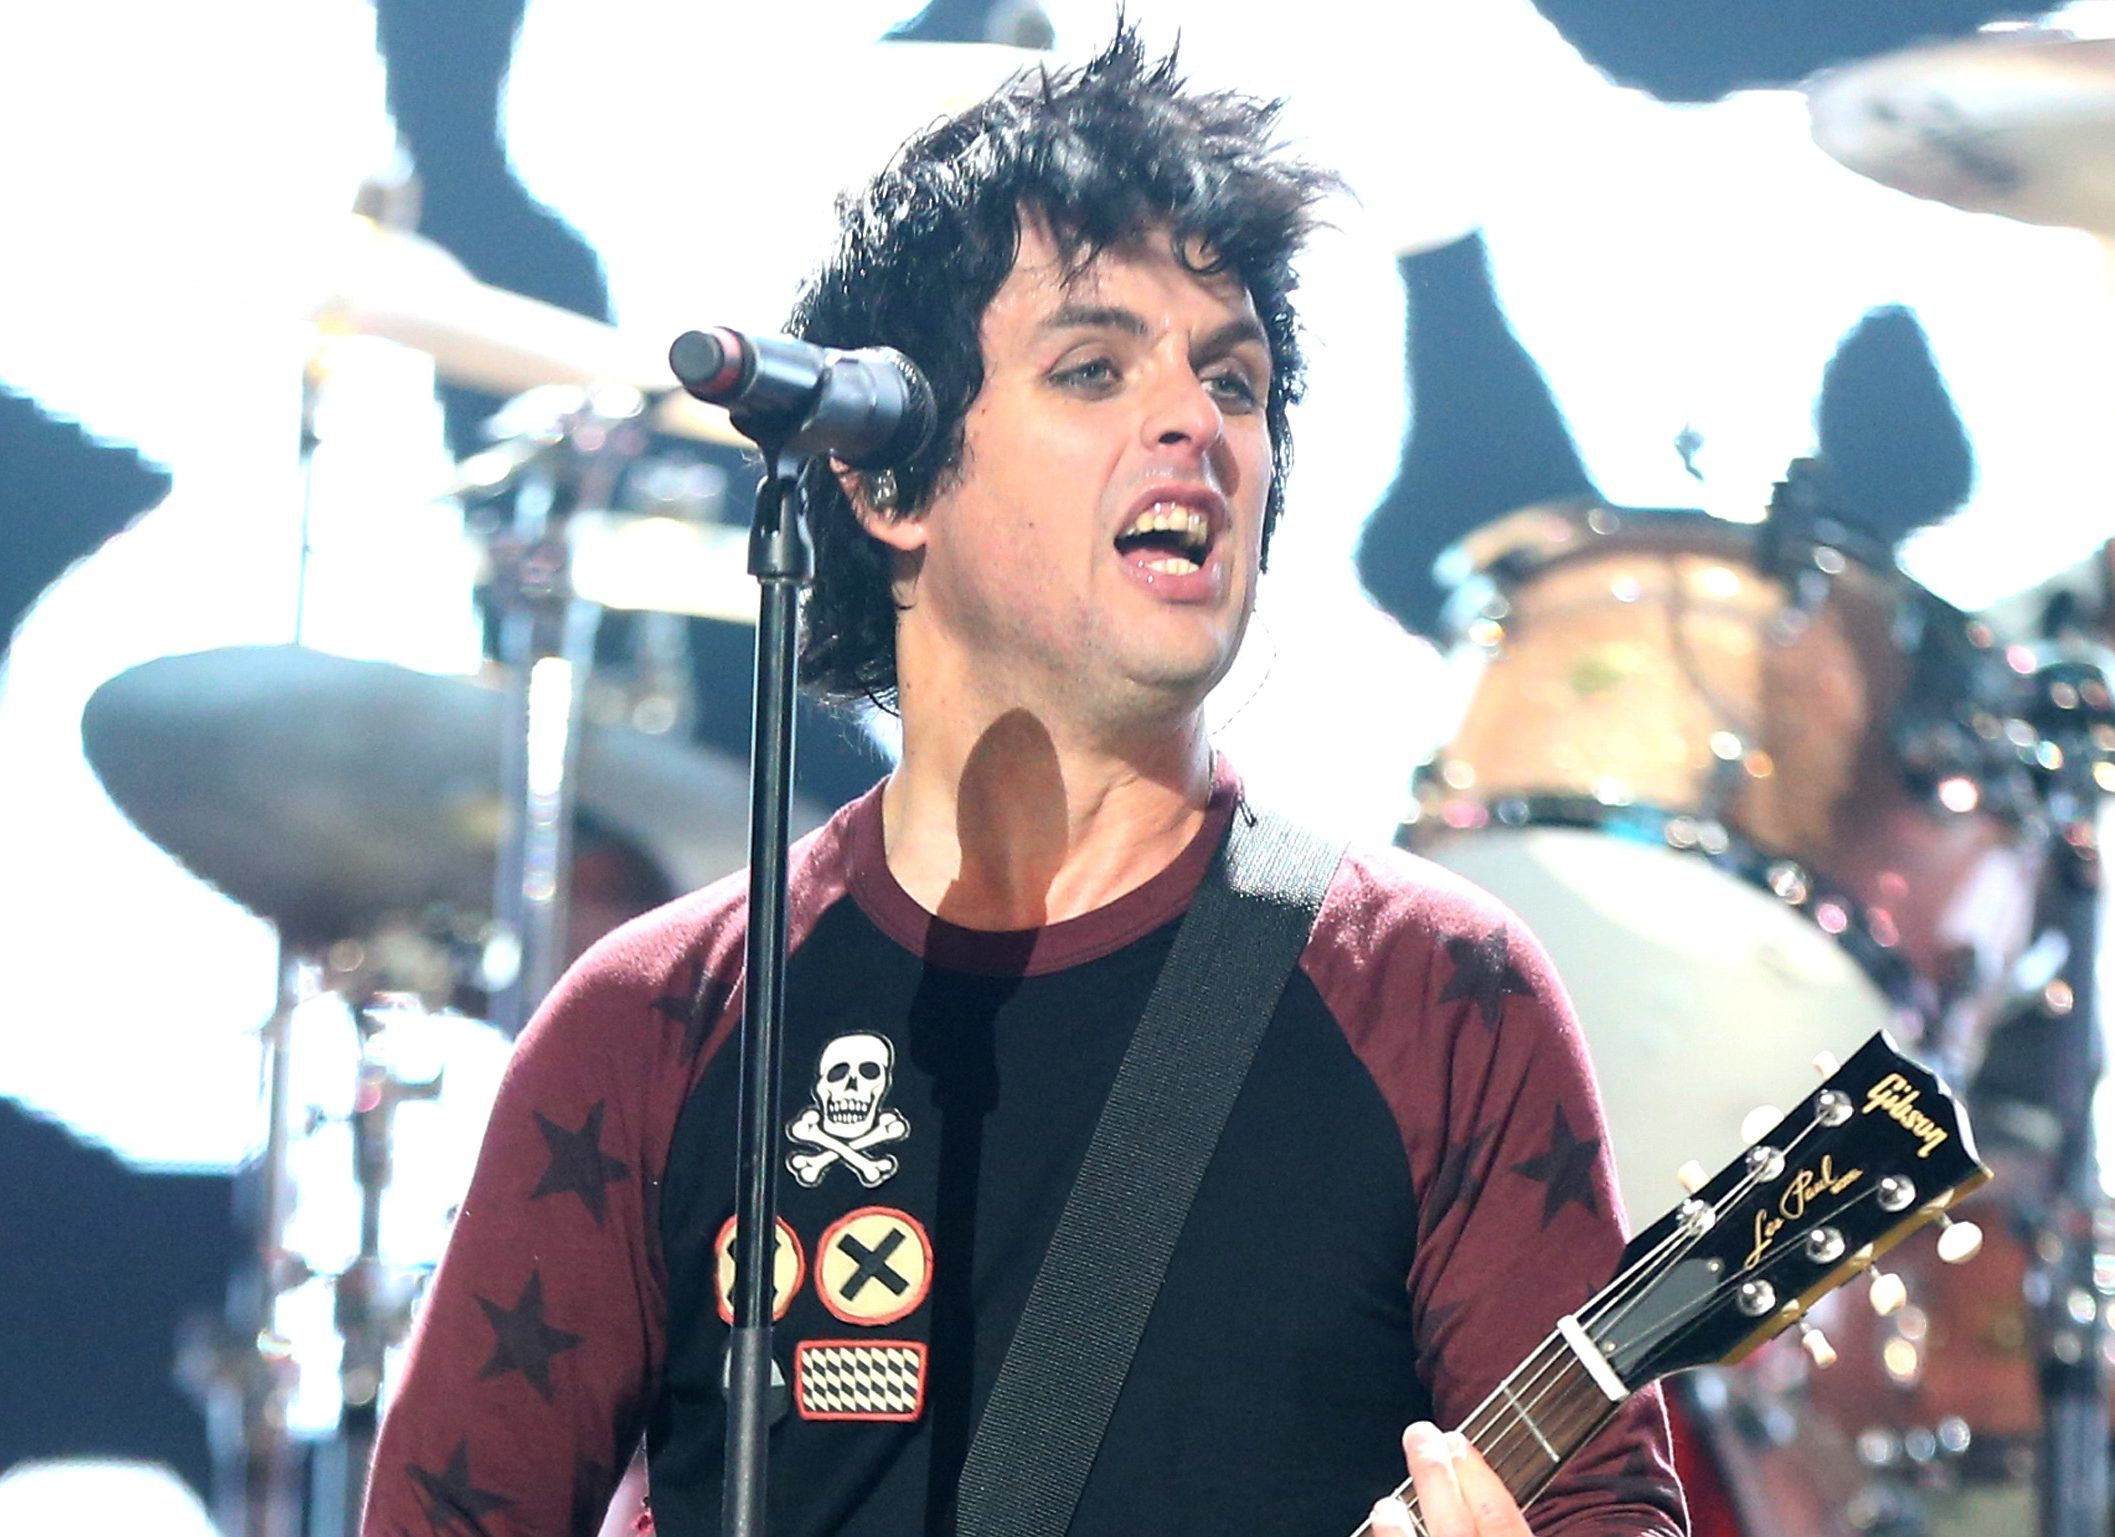 Frontman Billie Joe Armstrong of Green Day. It has been announced that today's Bellahouston Park gig is cancelled (Christopher Polk/Getty Images for Clear Channel)